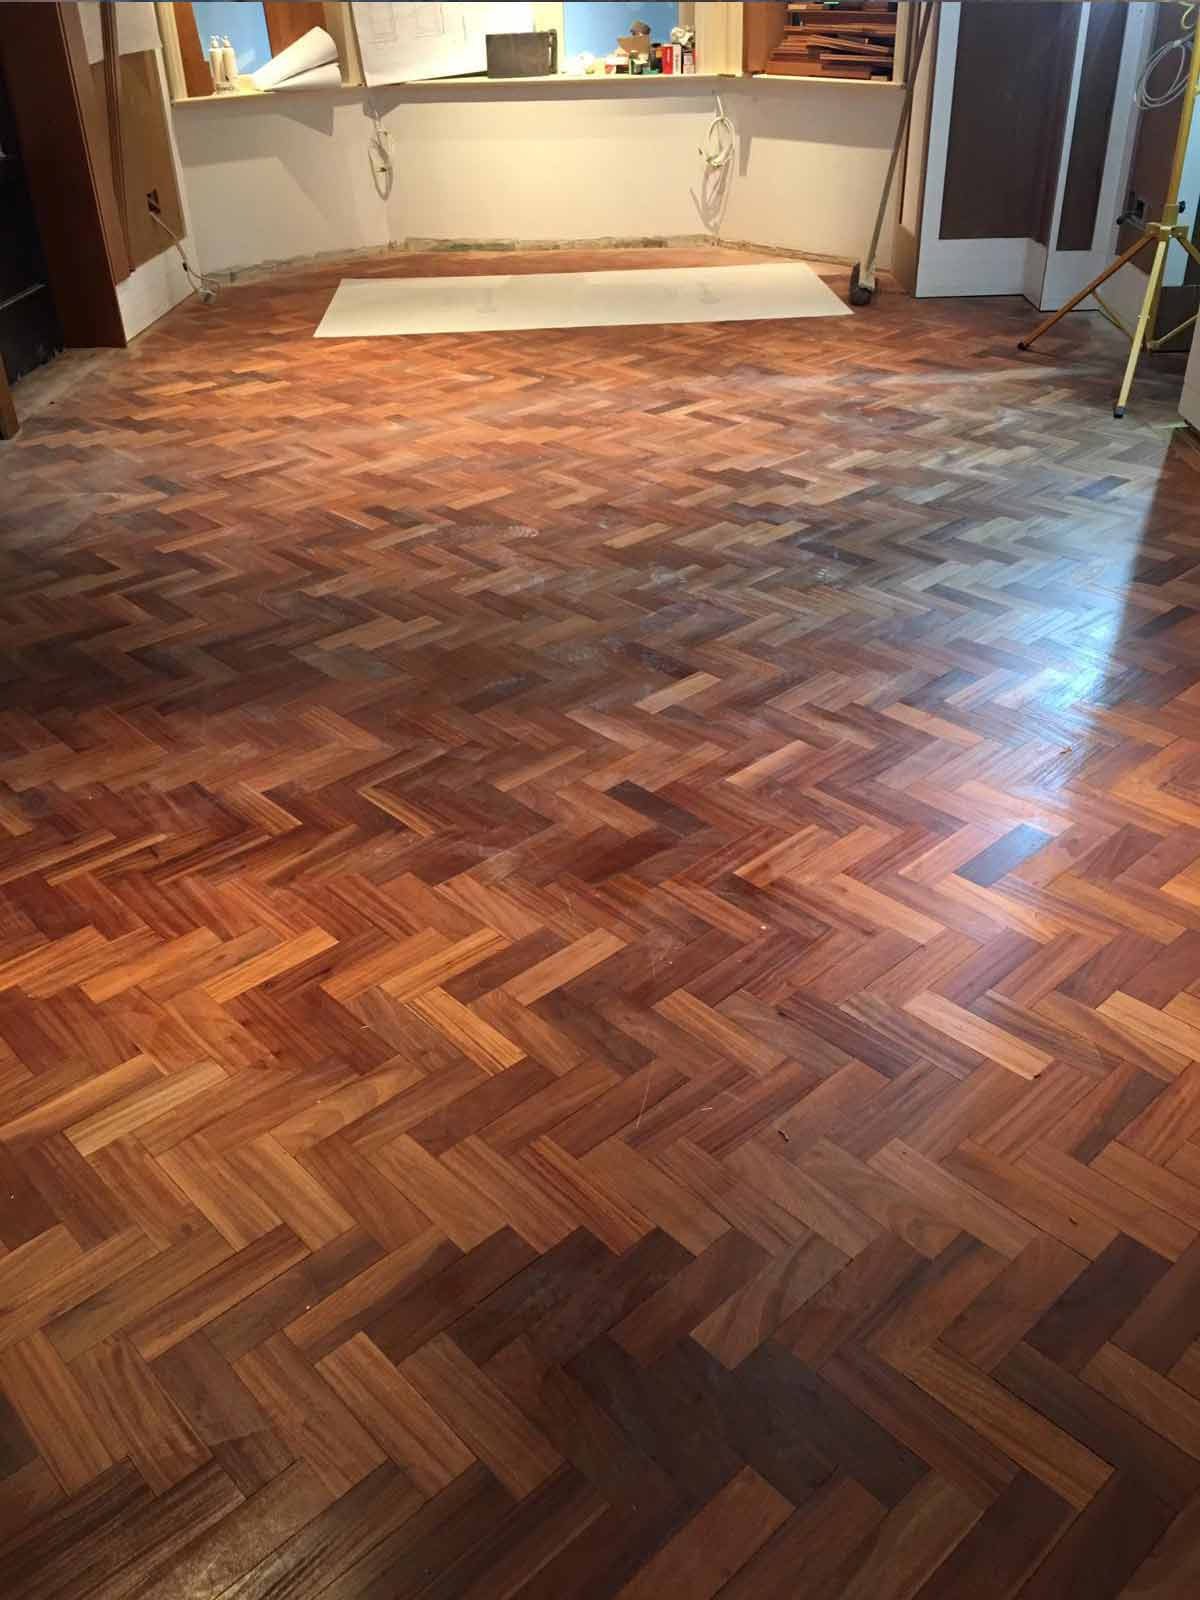 Parquet sanded in Dylan hotel d7